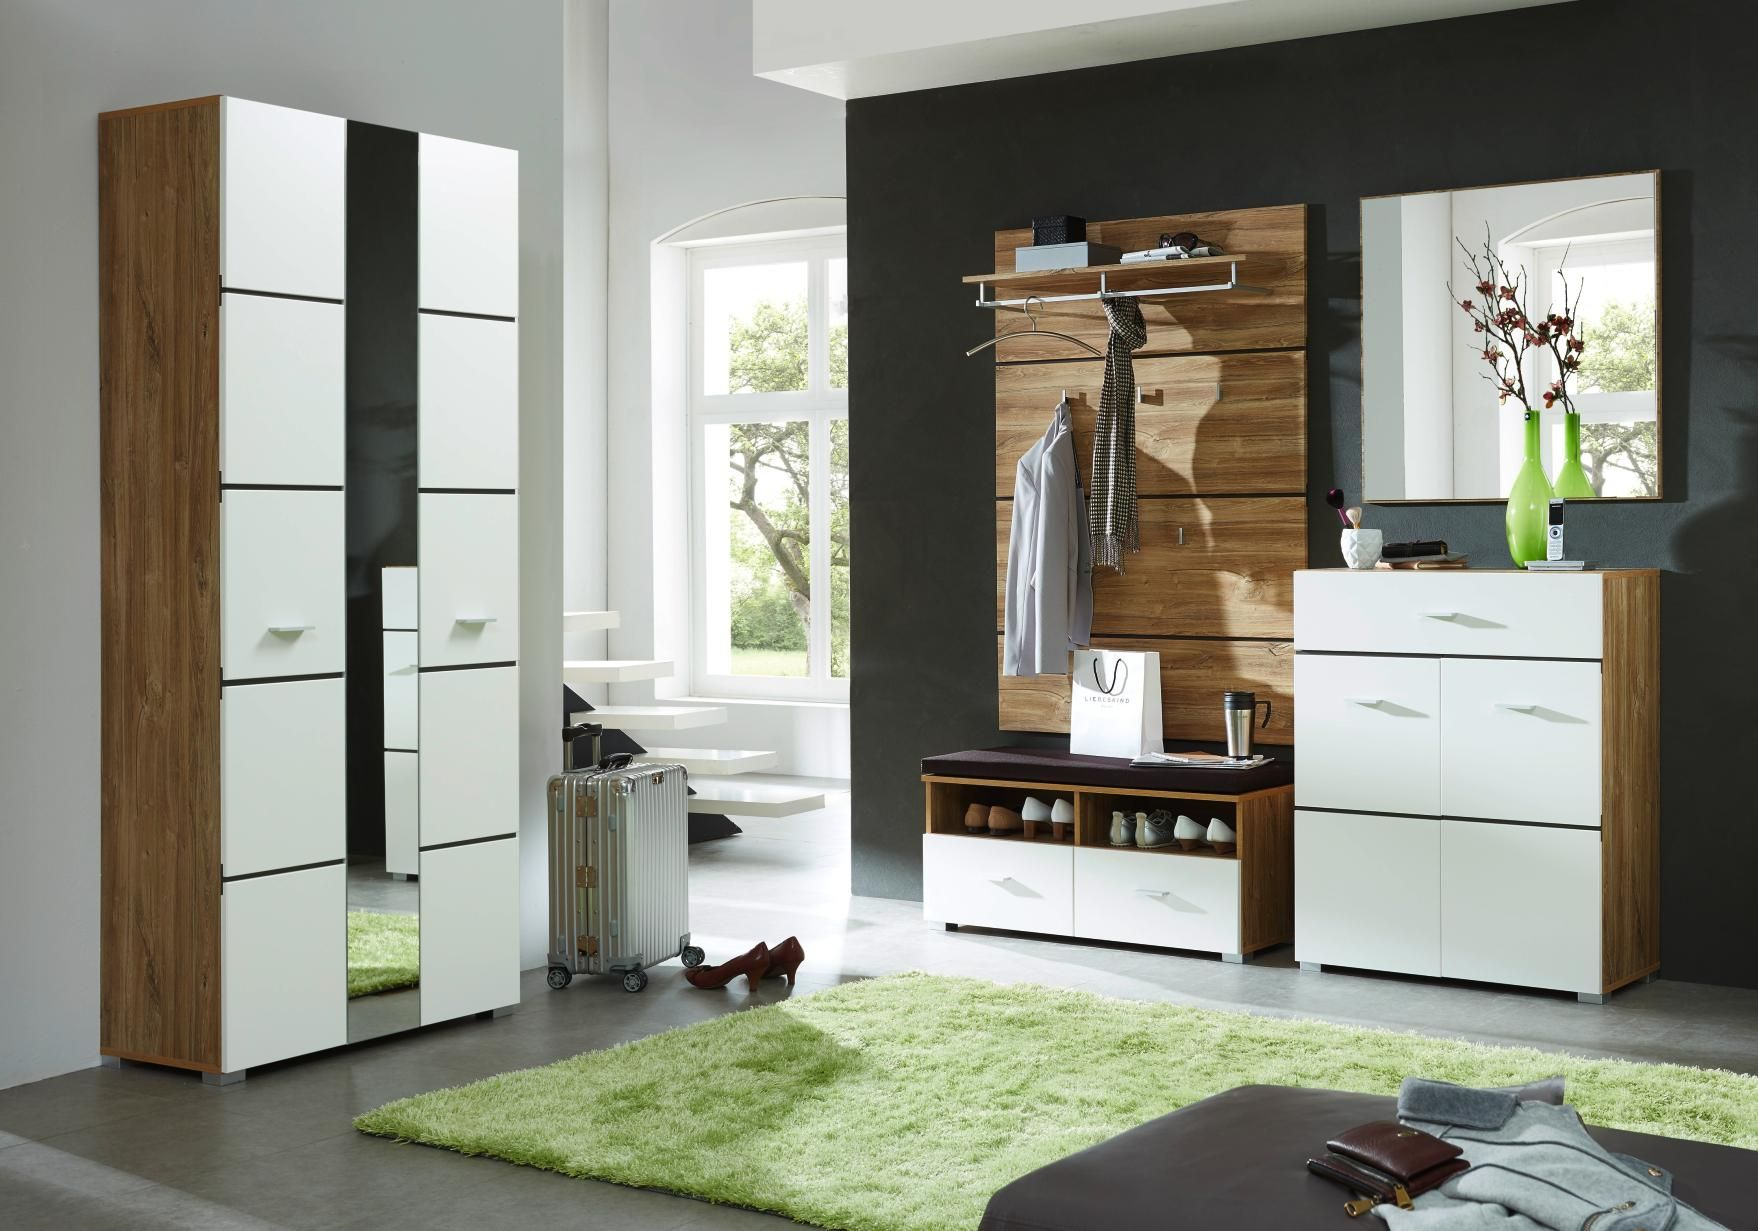 garderobe mit viel stauraum von voleo vorzimmer pinterest. Black Bedroom Furniture Sets. Home Design Ideas